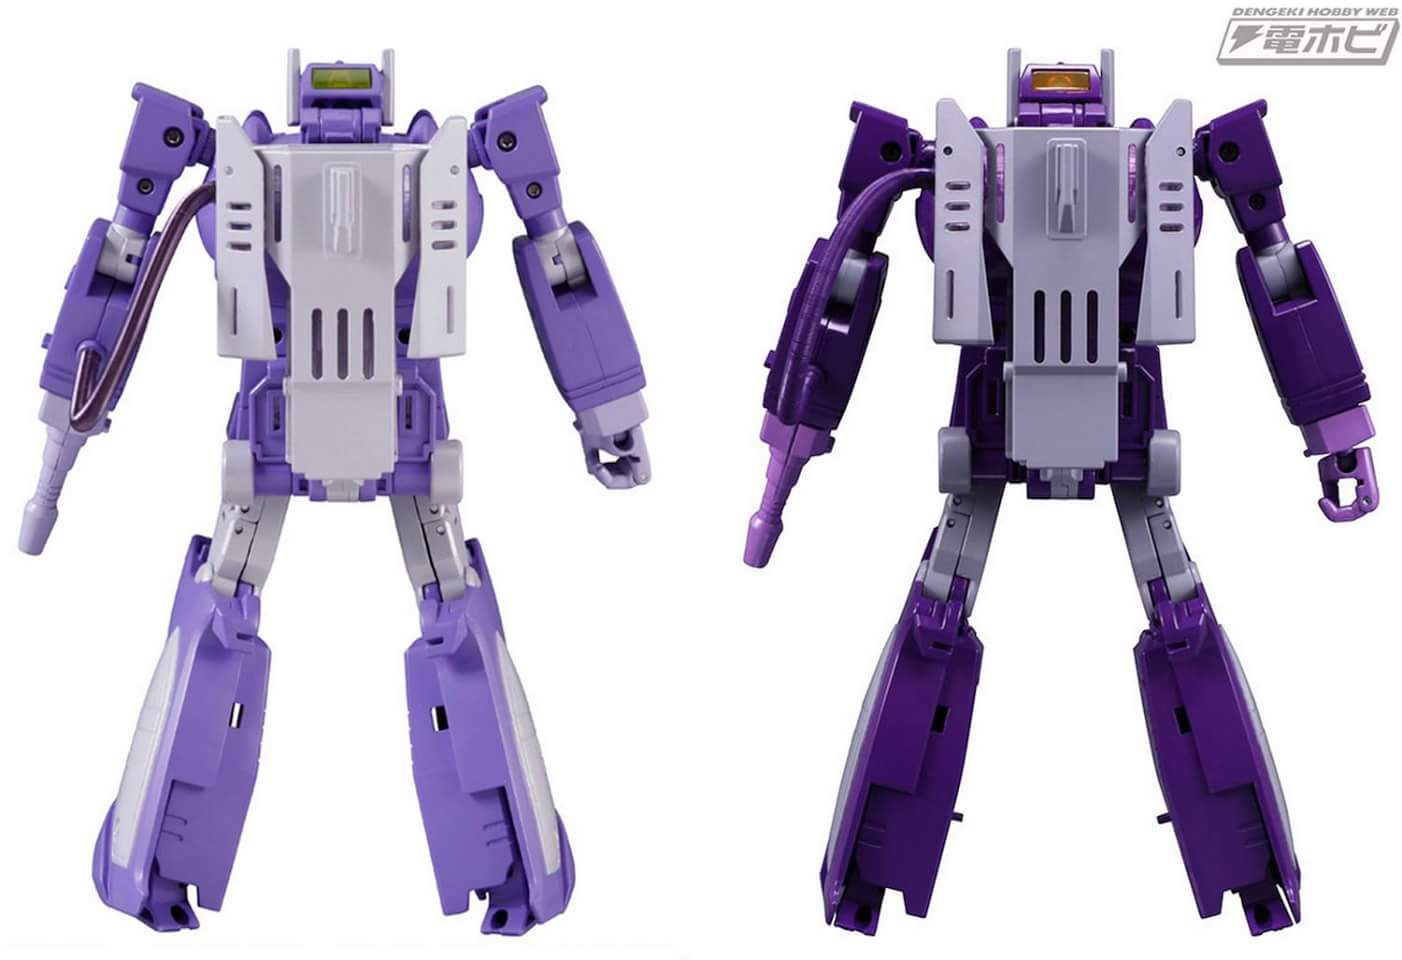 [Masterpiece] MP-29 Shockwave/Onde de Choc - Page 4 KtbsO1ZS_o